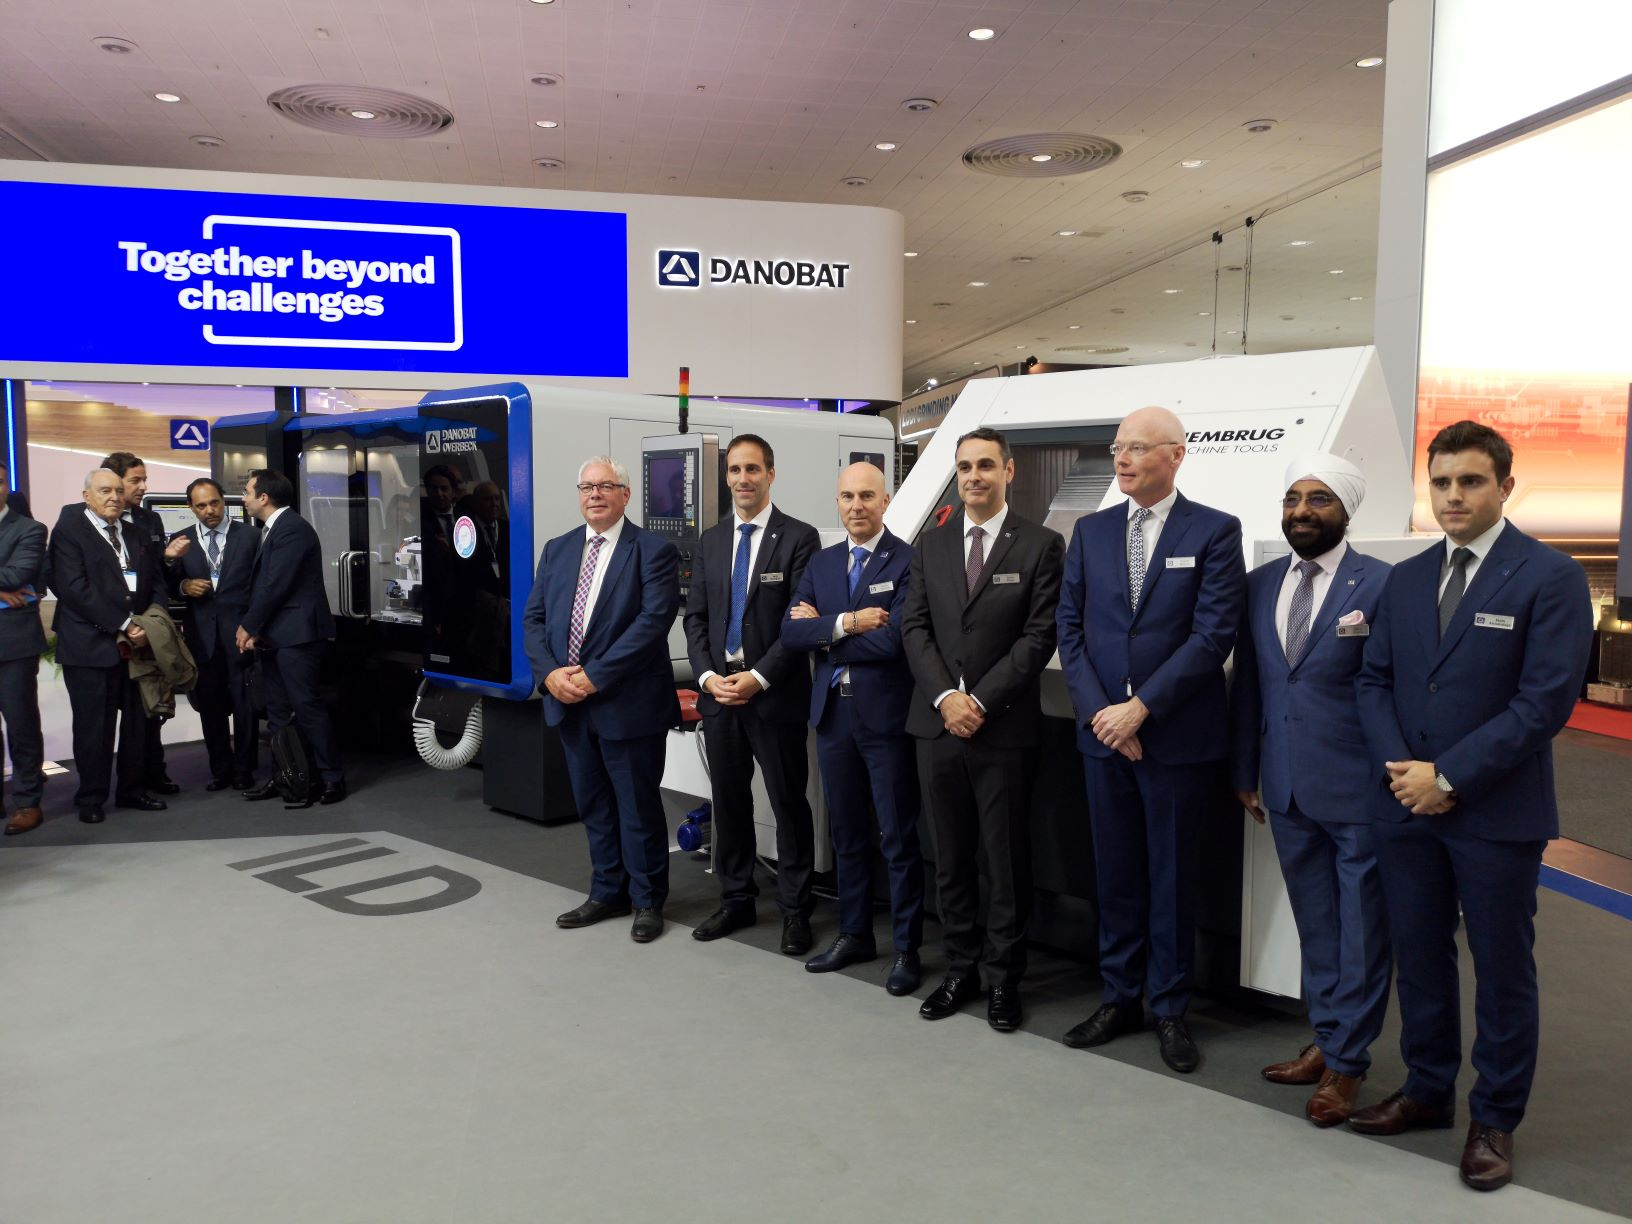 Danobat acquires the Dutch firm Hembrug Machine Tools to strengthen its position in the field of finish hard turning